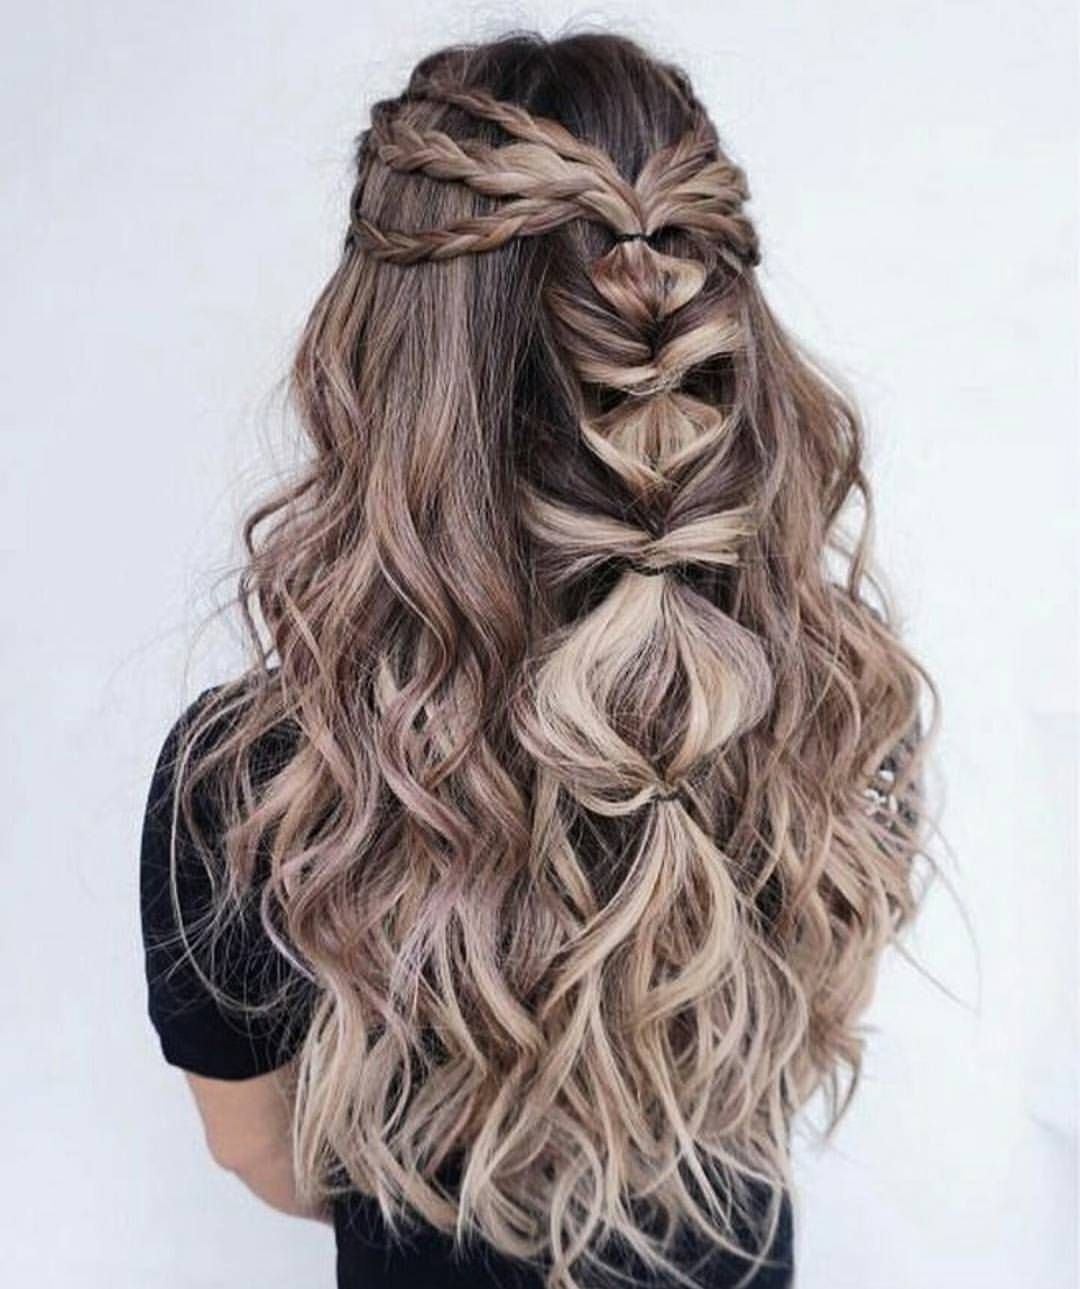 Wedding Hairstyles Boho: 34 Boho Wedding Hairstyles To Inspire